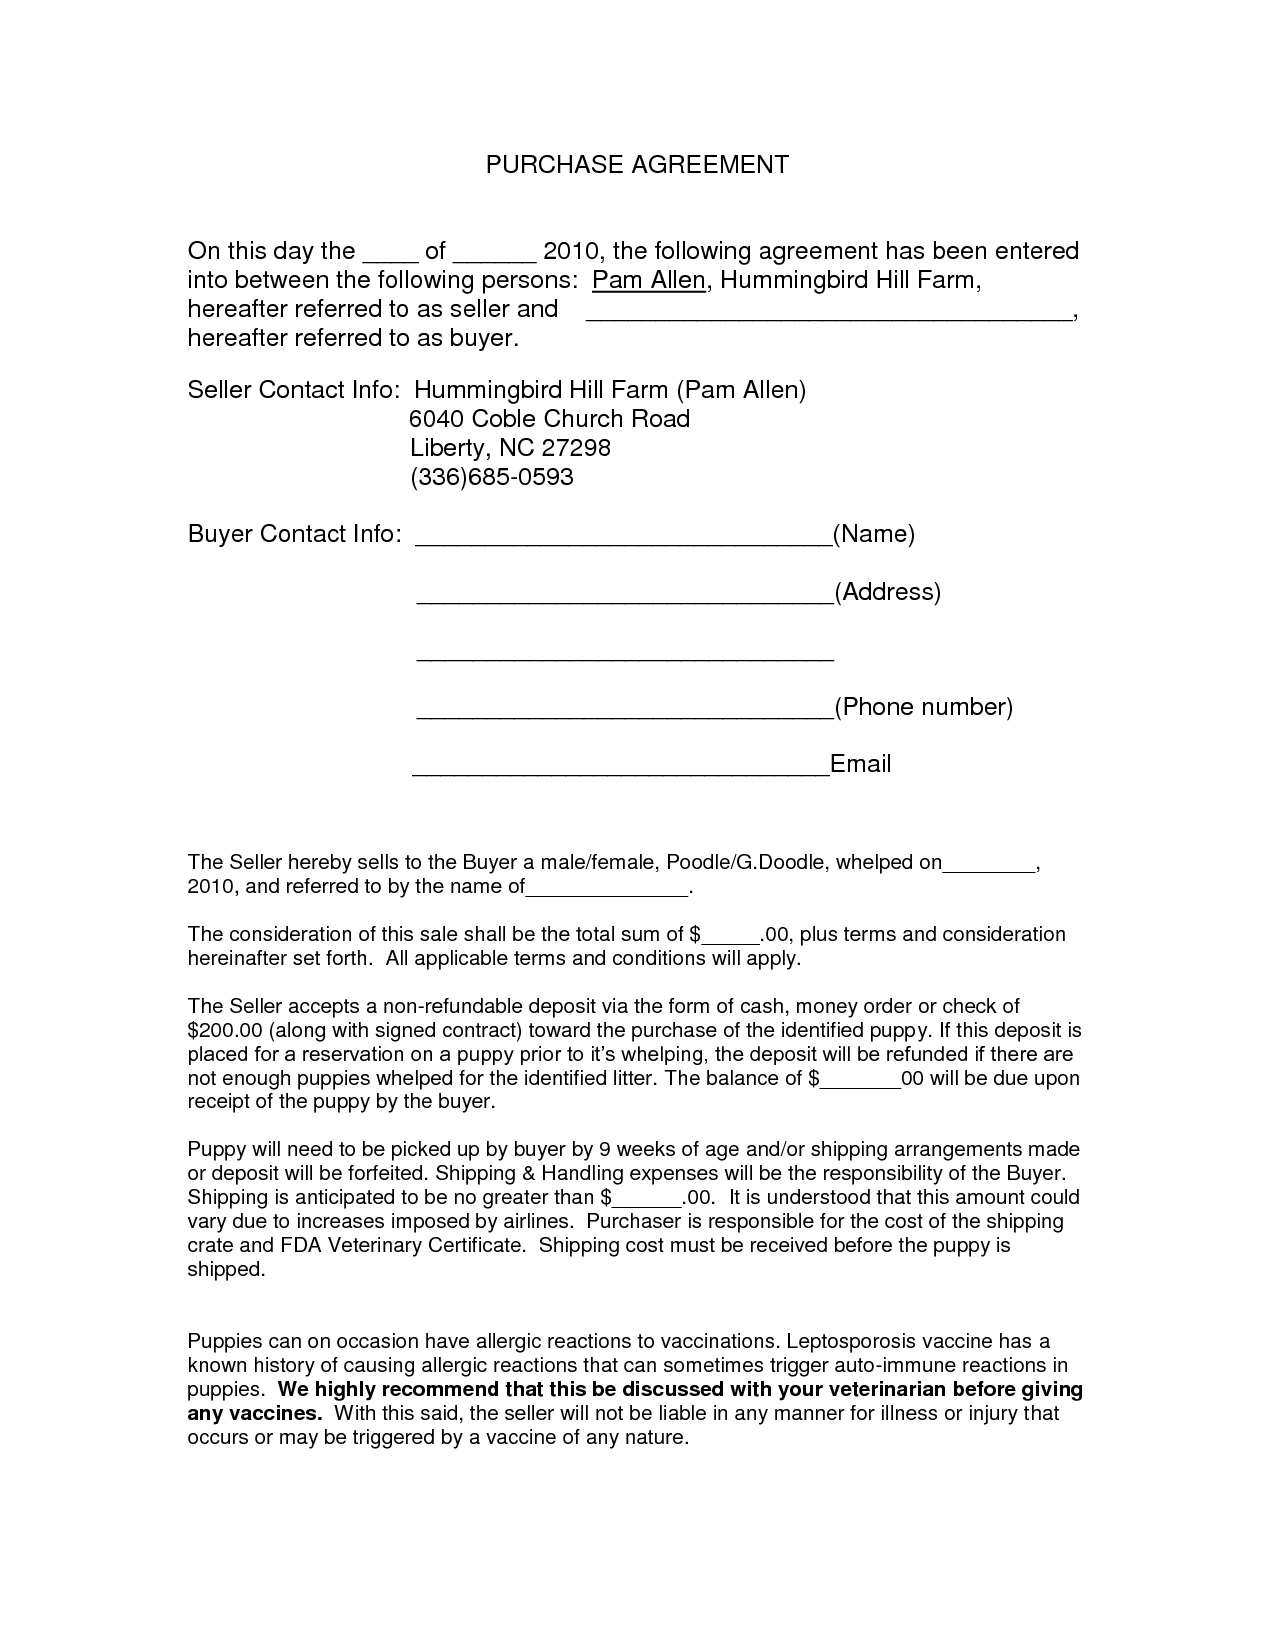 Auto Purchase Agreement Form - Docnyy13910 - Purchase Contract - Free Printable Purchase Agreement Template